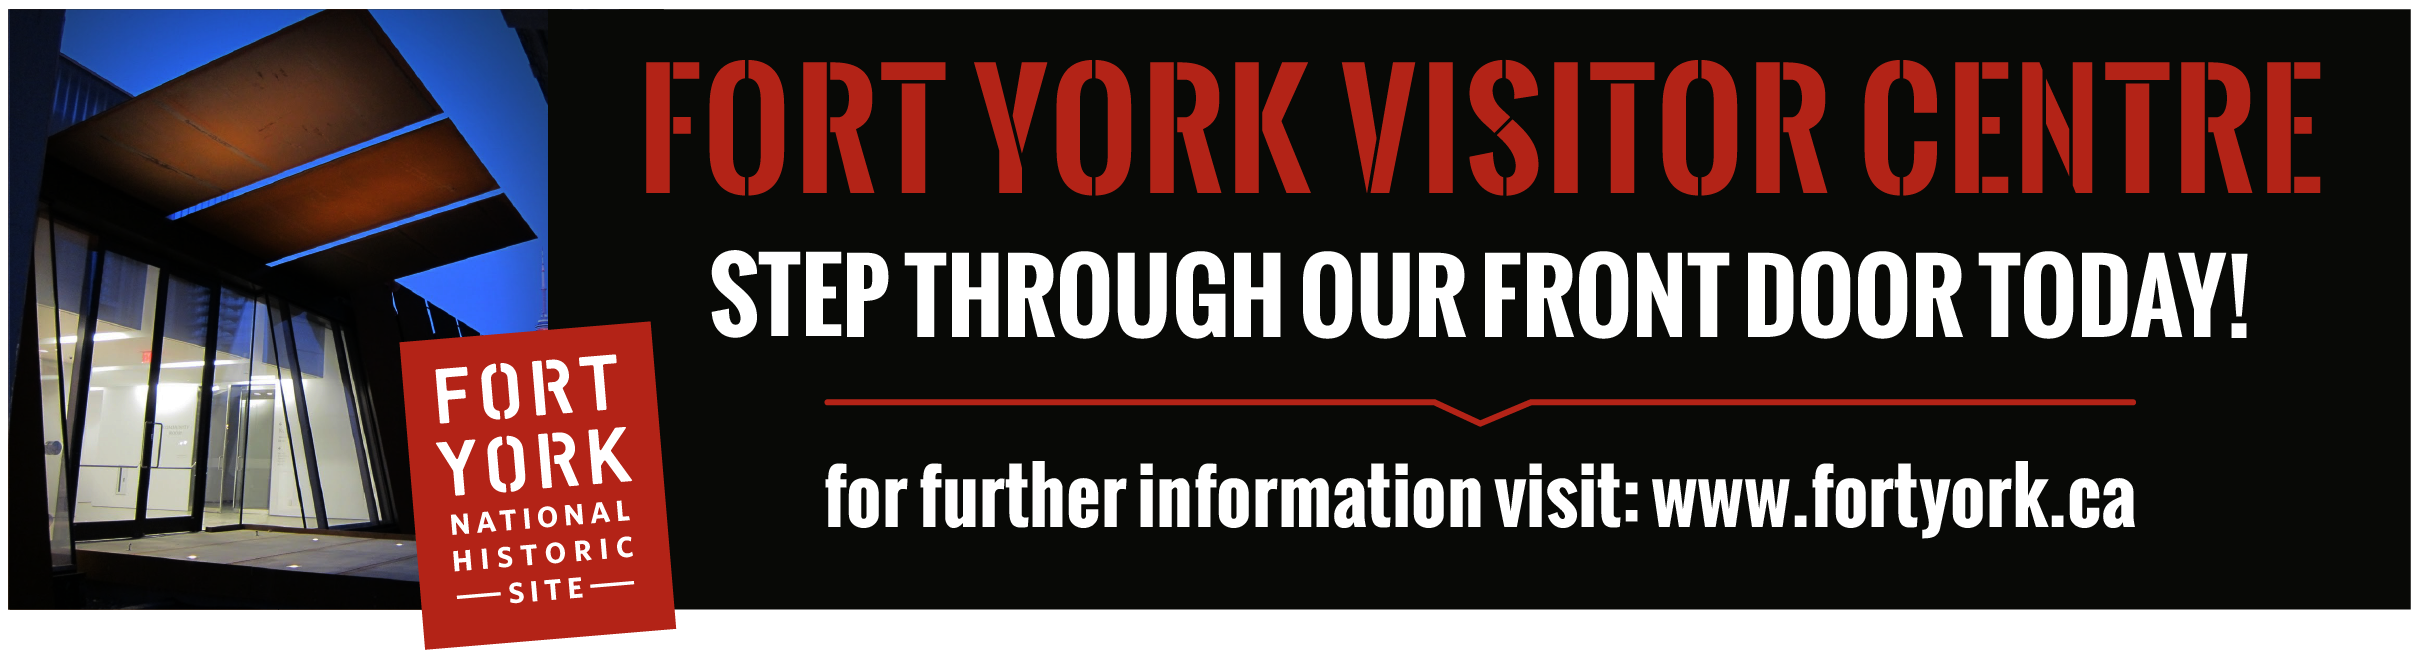 Fort-York-Visitor-Centre-Ad